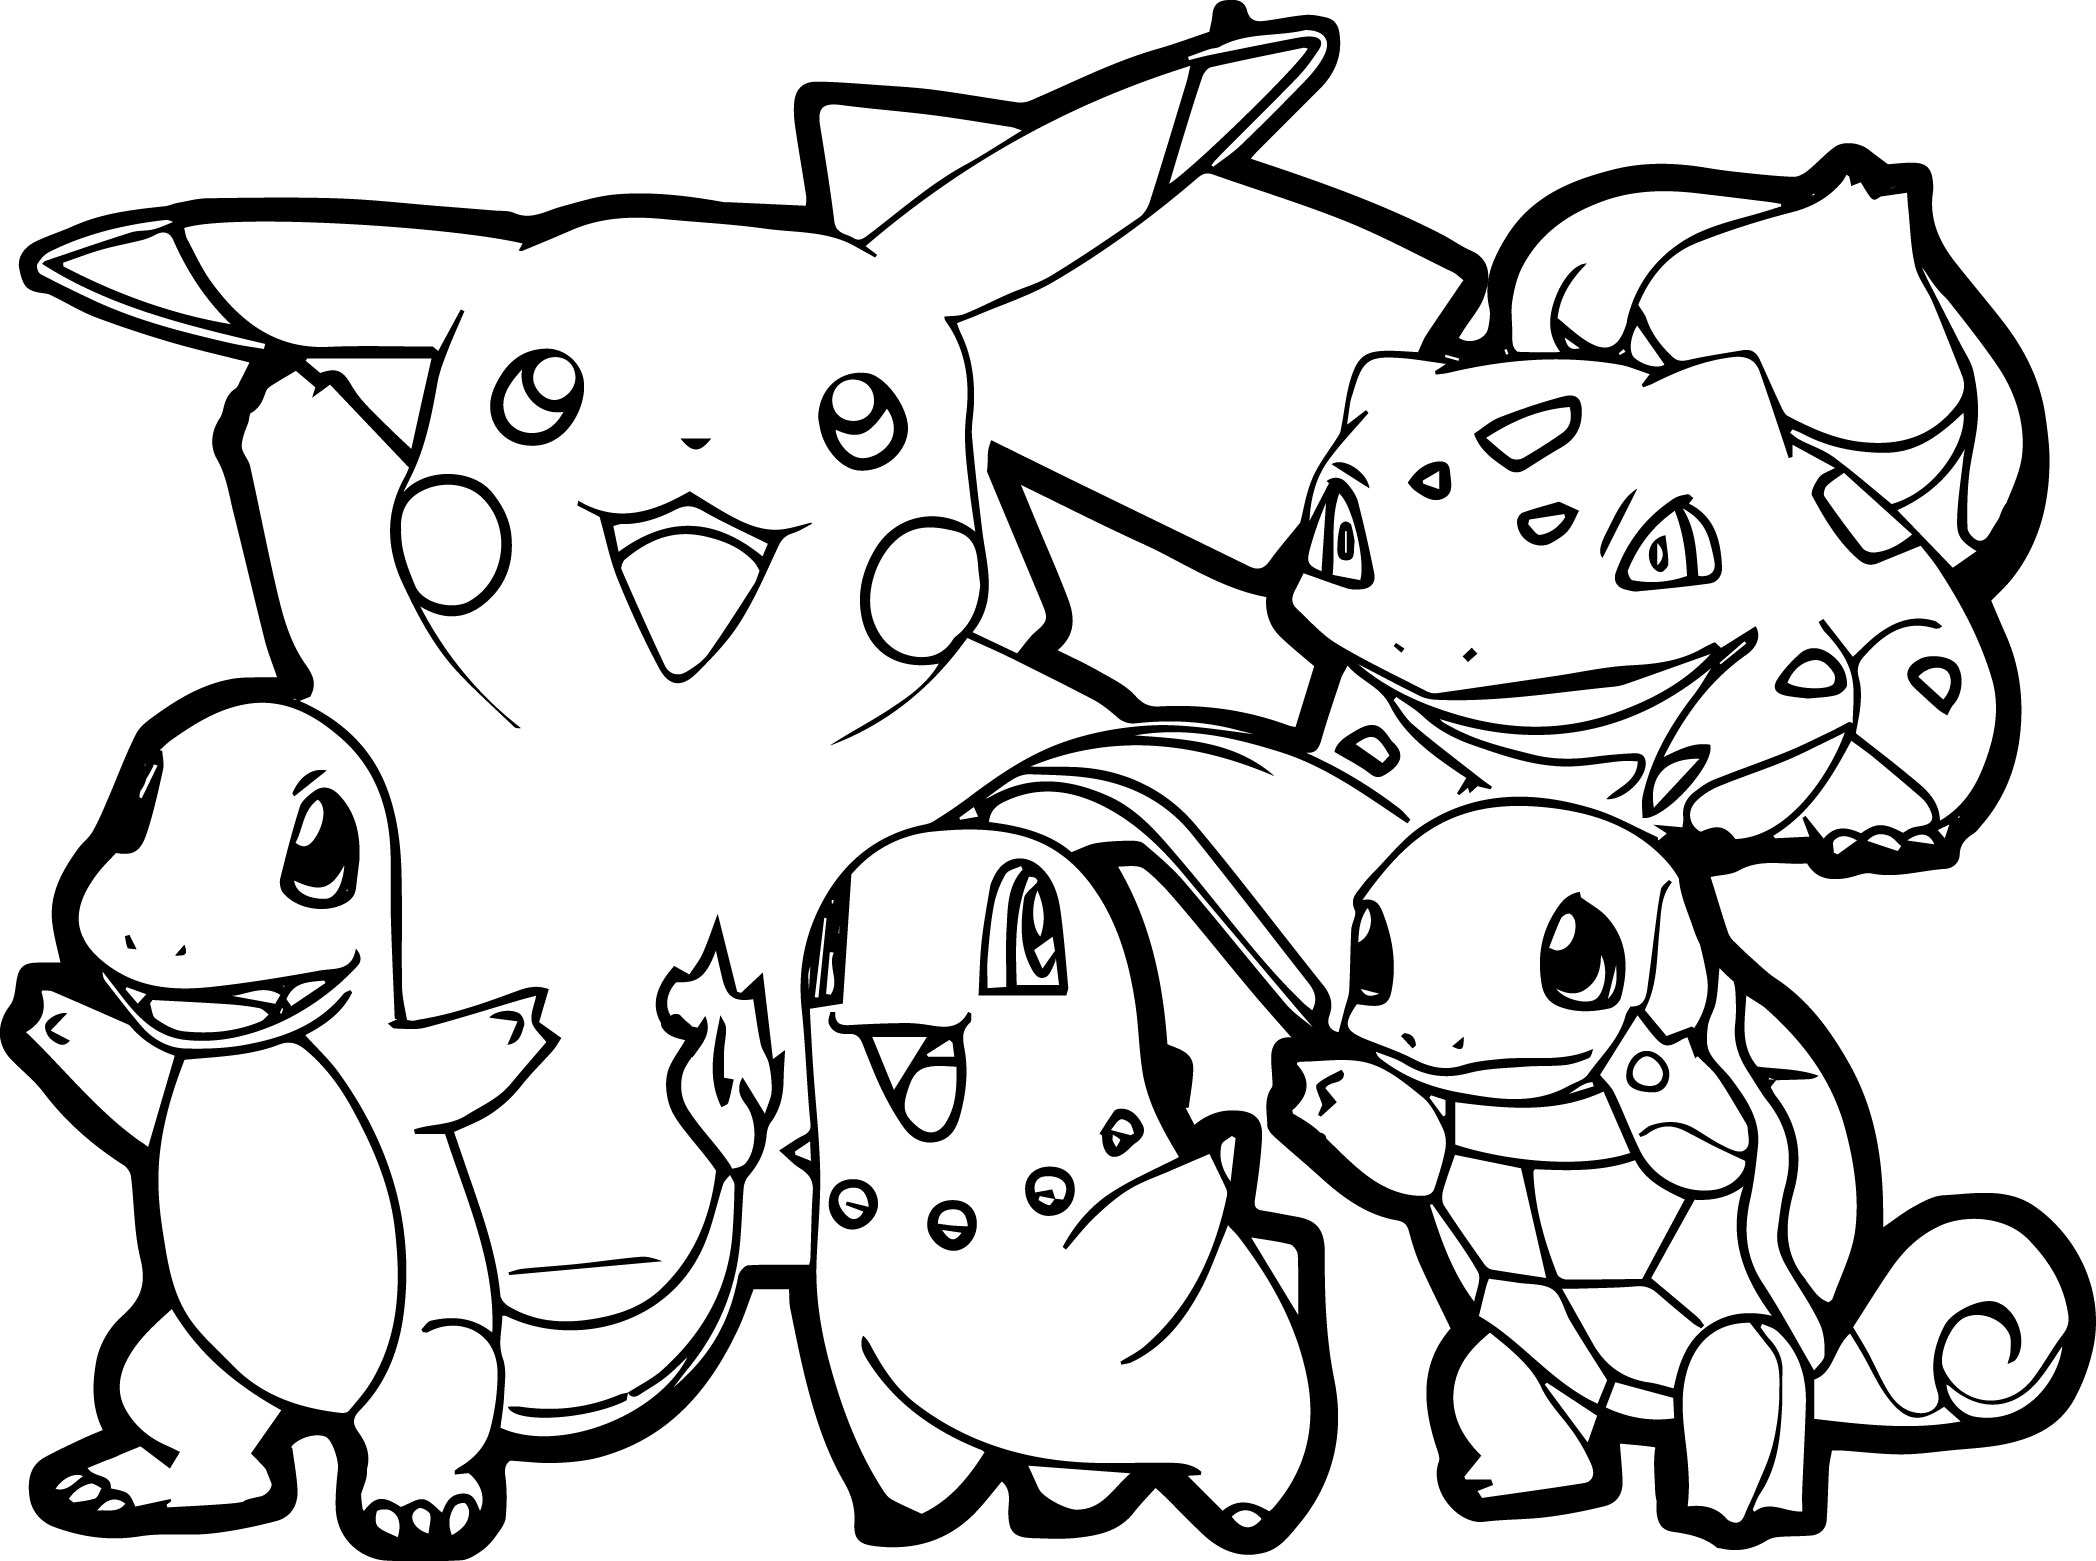 2096x1561 Draw All Pokemon Coloring Pages 84 On Coloring Online With All